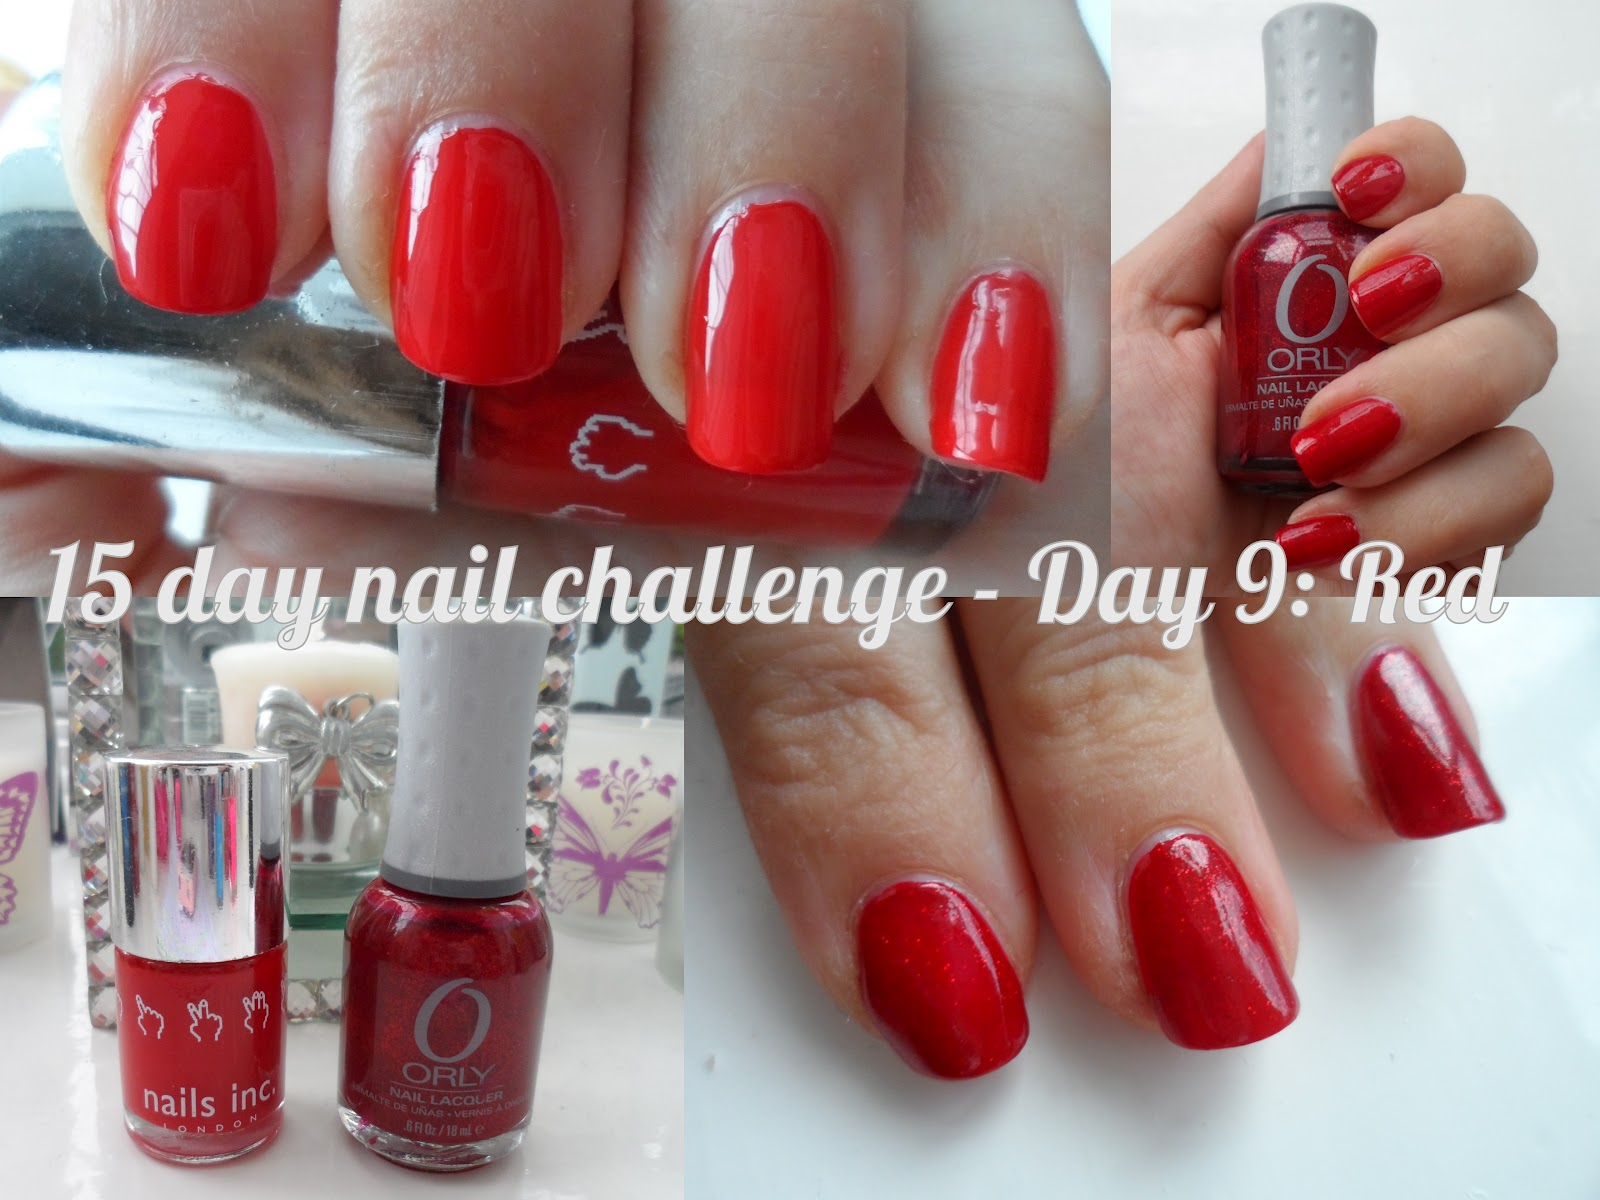 Makeup Savvy 15 day nail challenge - Day 9 - Red | flutter and sparkle